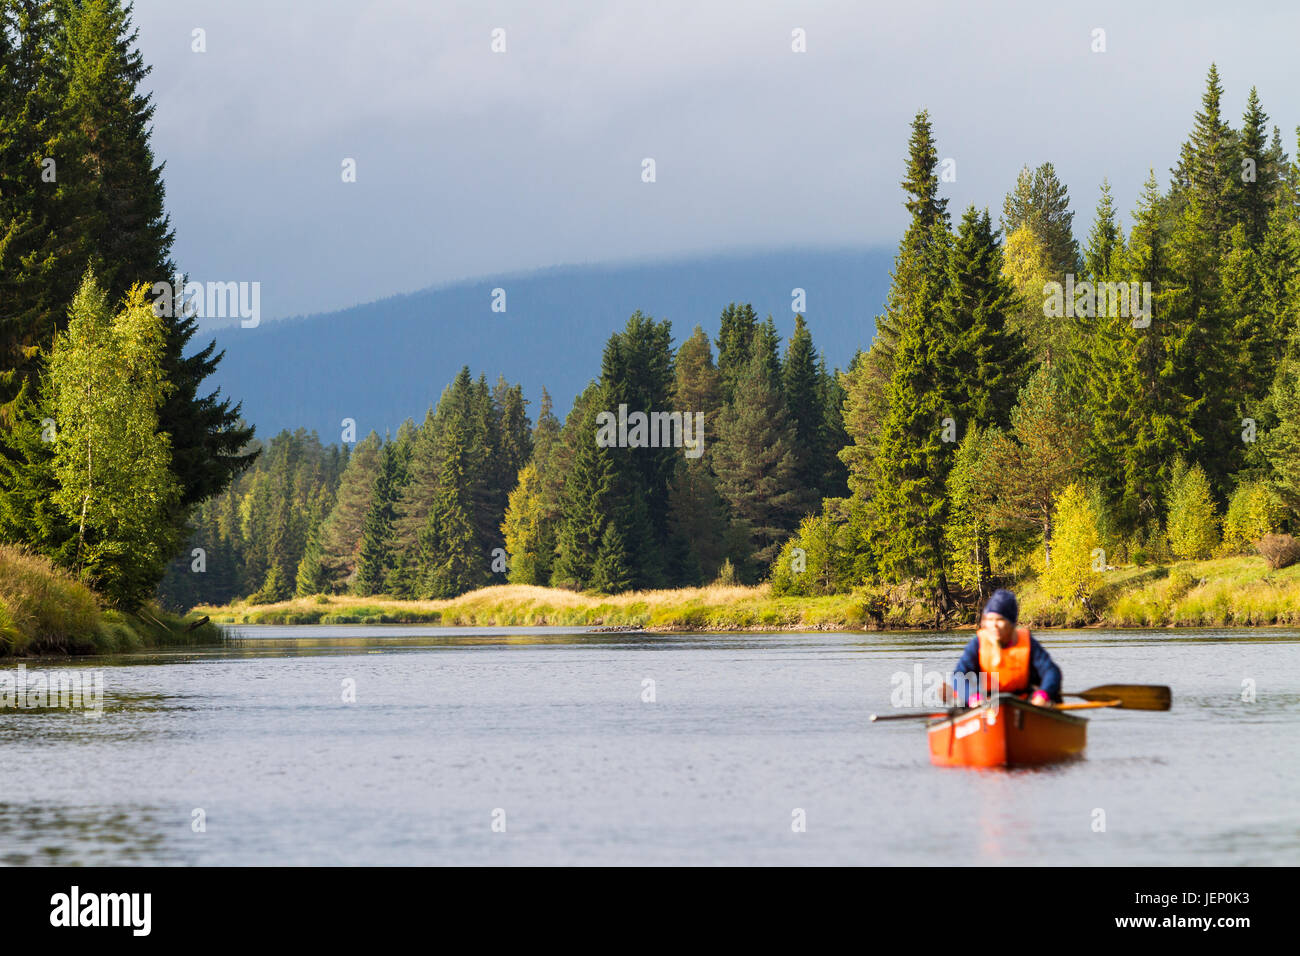 Person kayaking - Stock Image